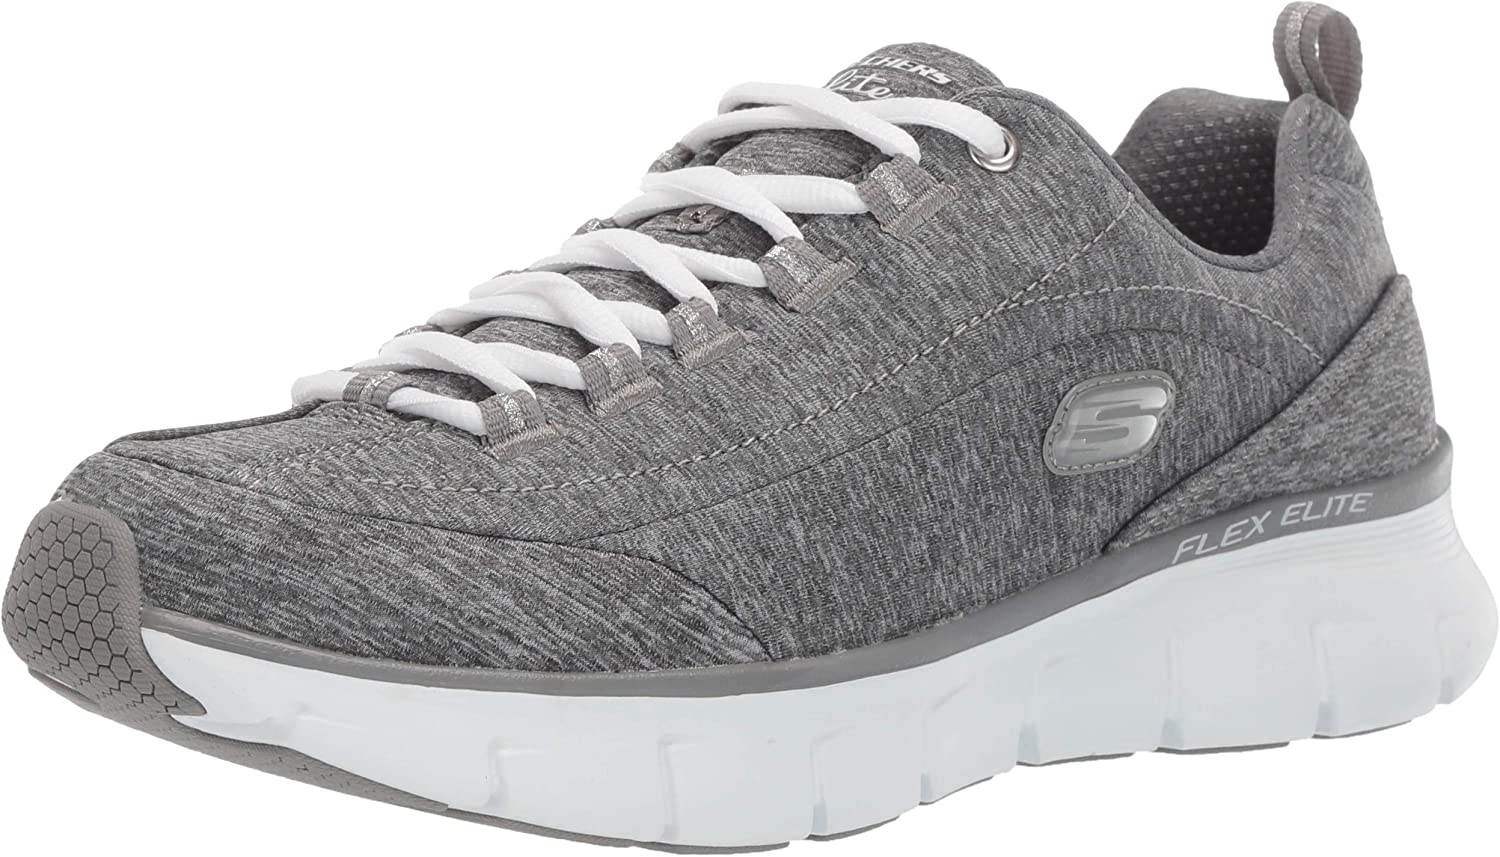 Skechers Women's Synergy 3.0-Spellbound Sneaker Grey 7H M US